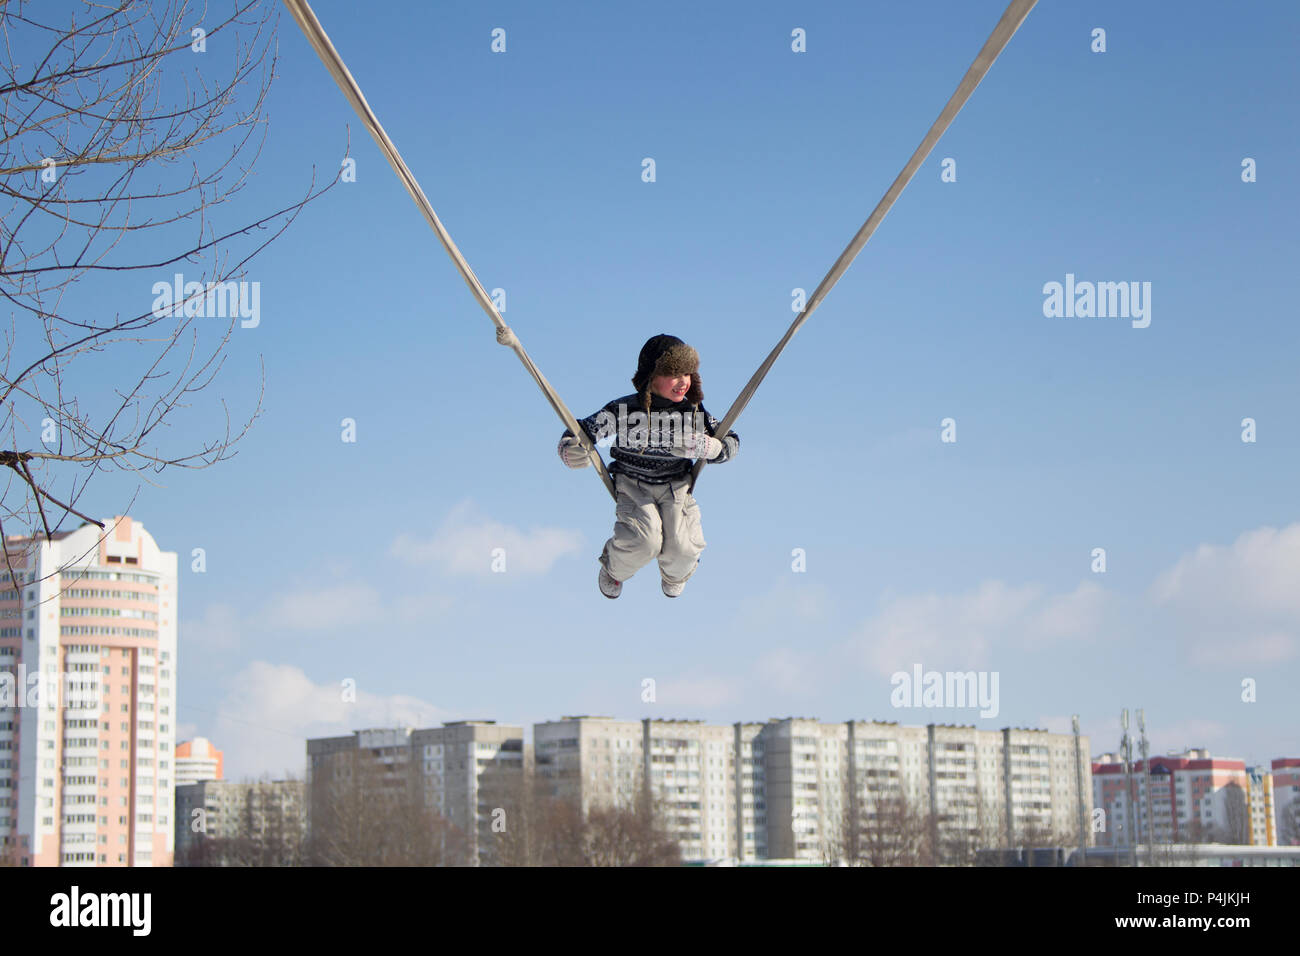 The child is riding high on a swing from the rope - Stock Image